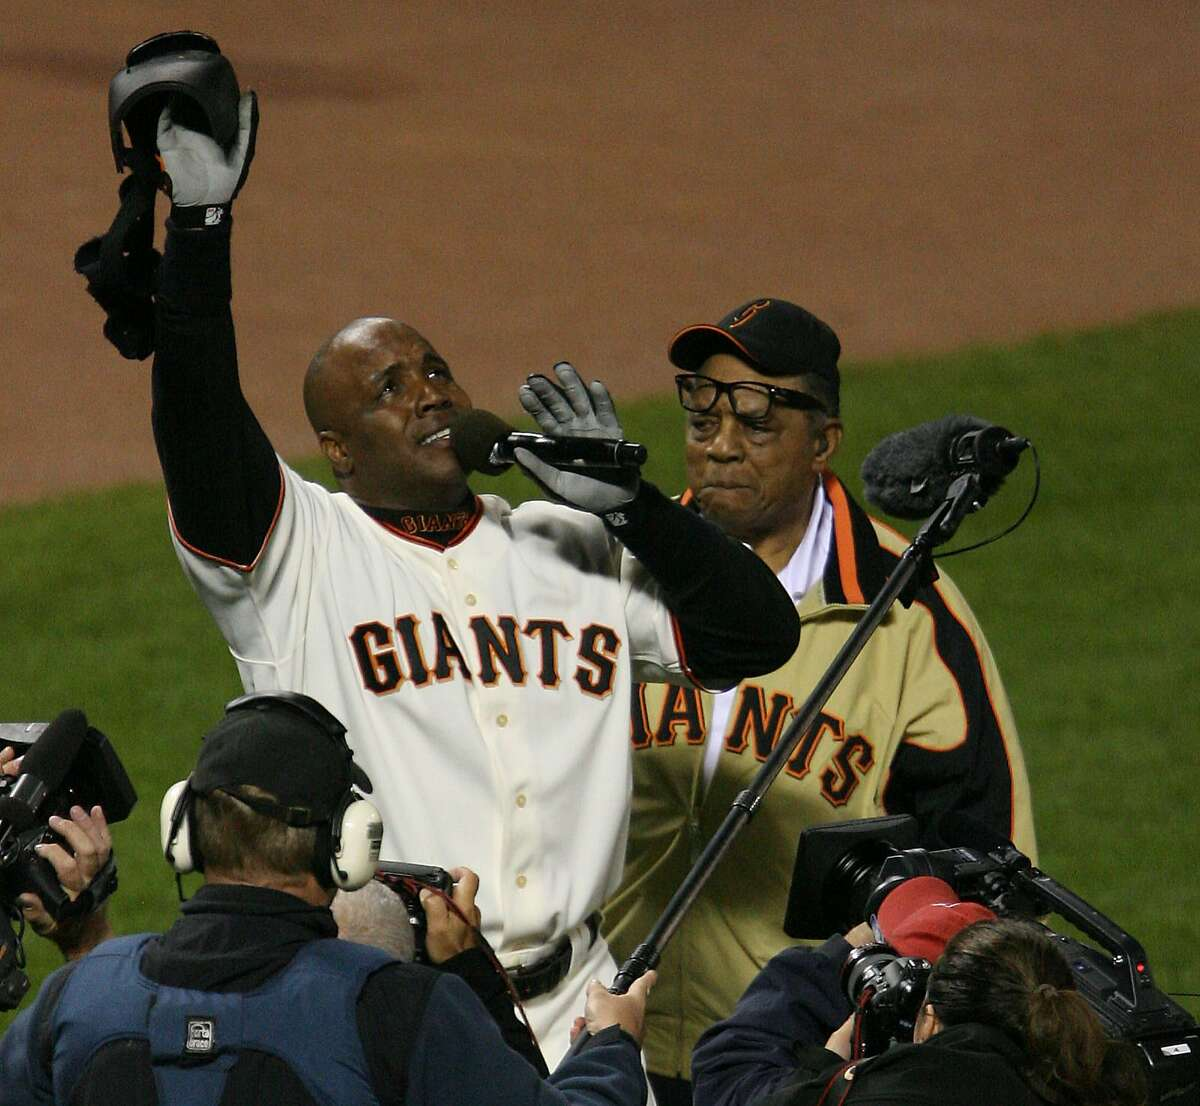 After hitting his 756th home run, Barry Bonds and Willie Mays appear to be near tears. Celebration of Barry Bonds's 756th home run that breaks the all-time career home run record.